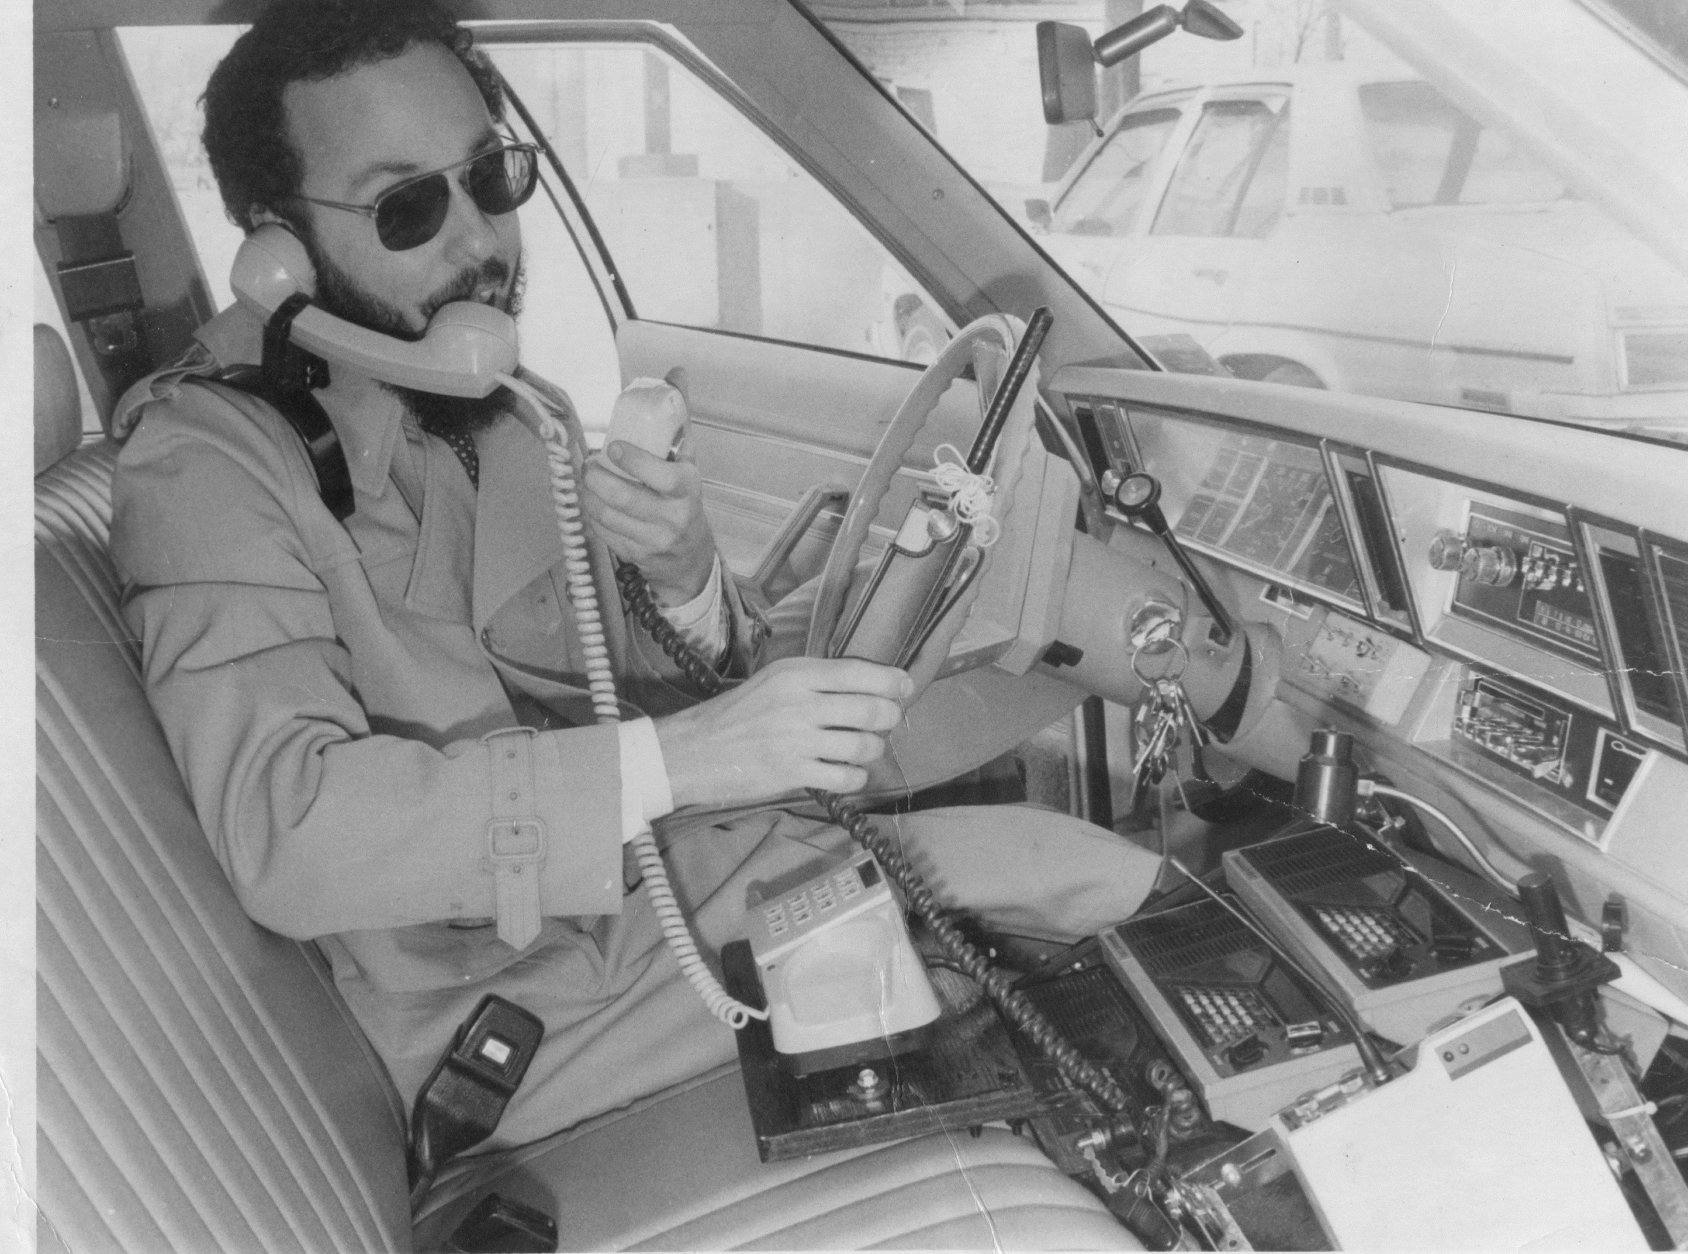 In his mobile traffic unit, Statter kept multiple police scanners going in the car to alert him to any traffic hotspots. (Courtesy Dave Statter)